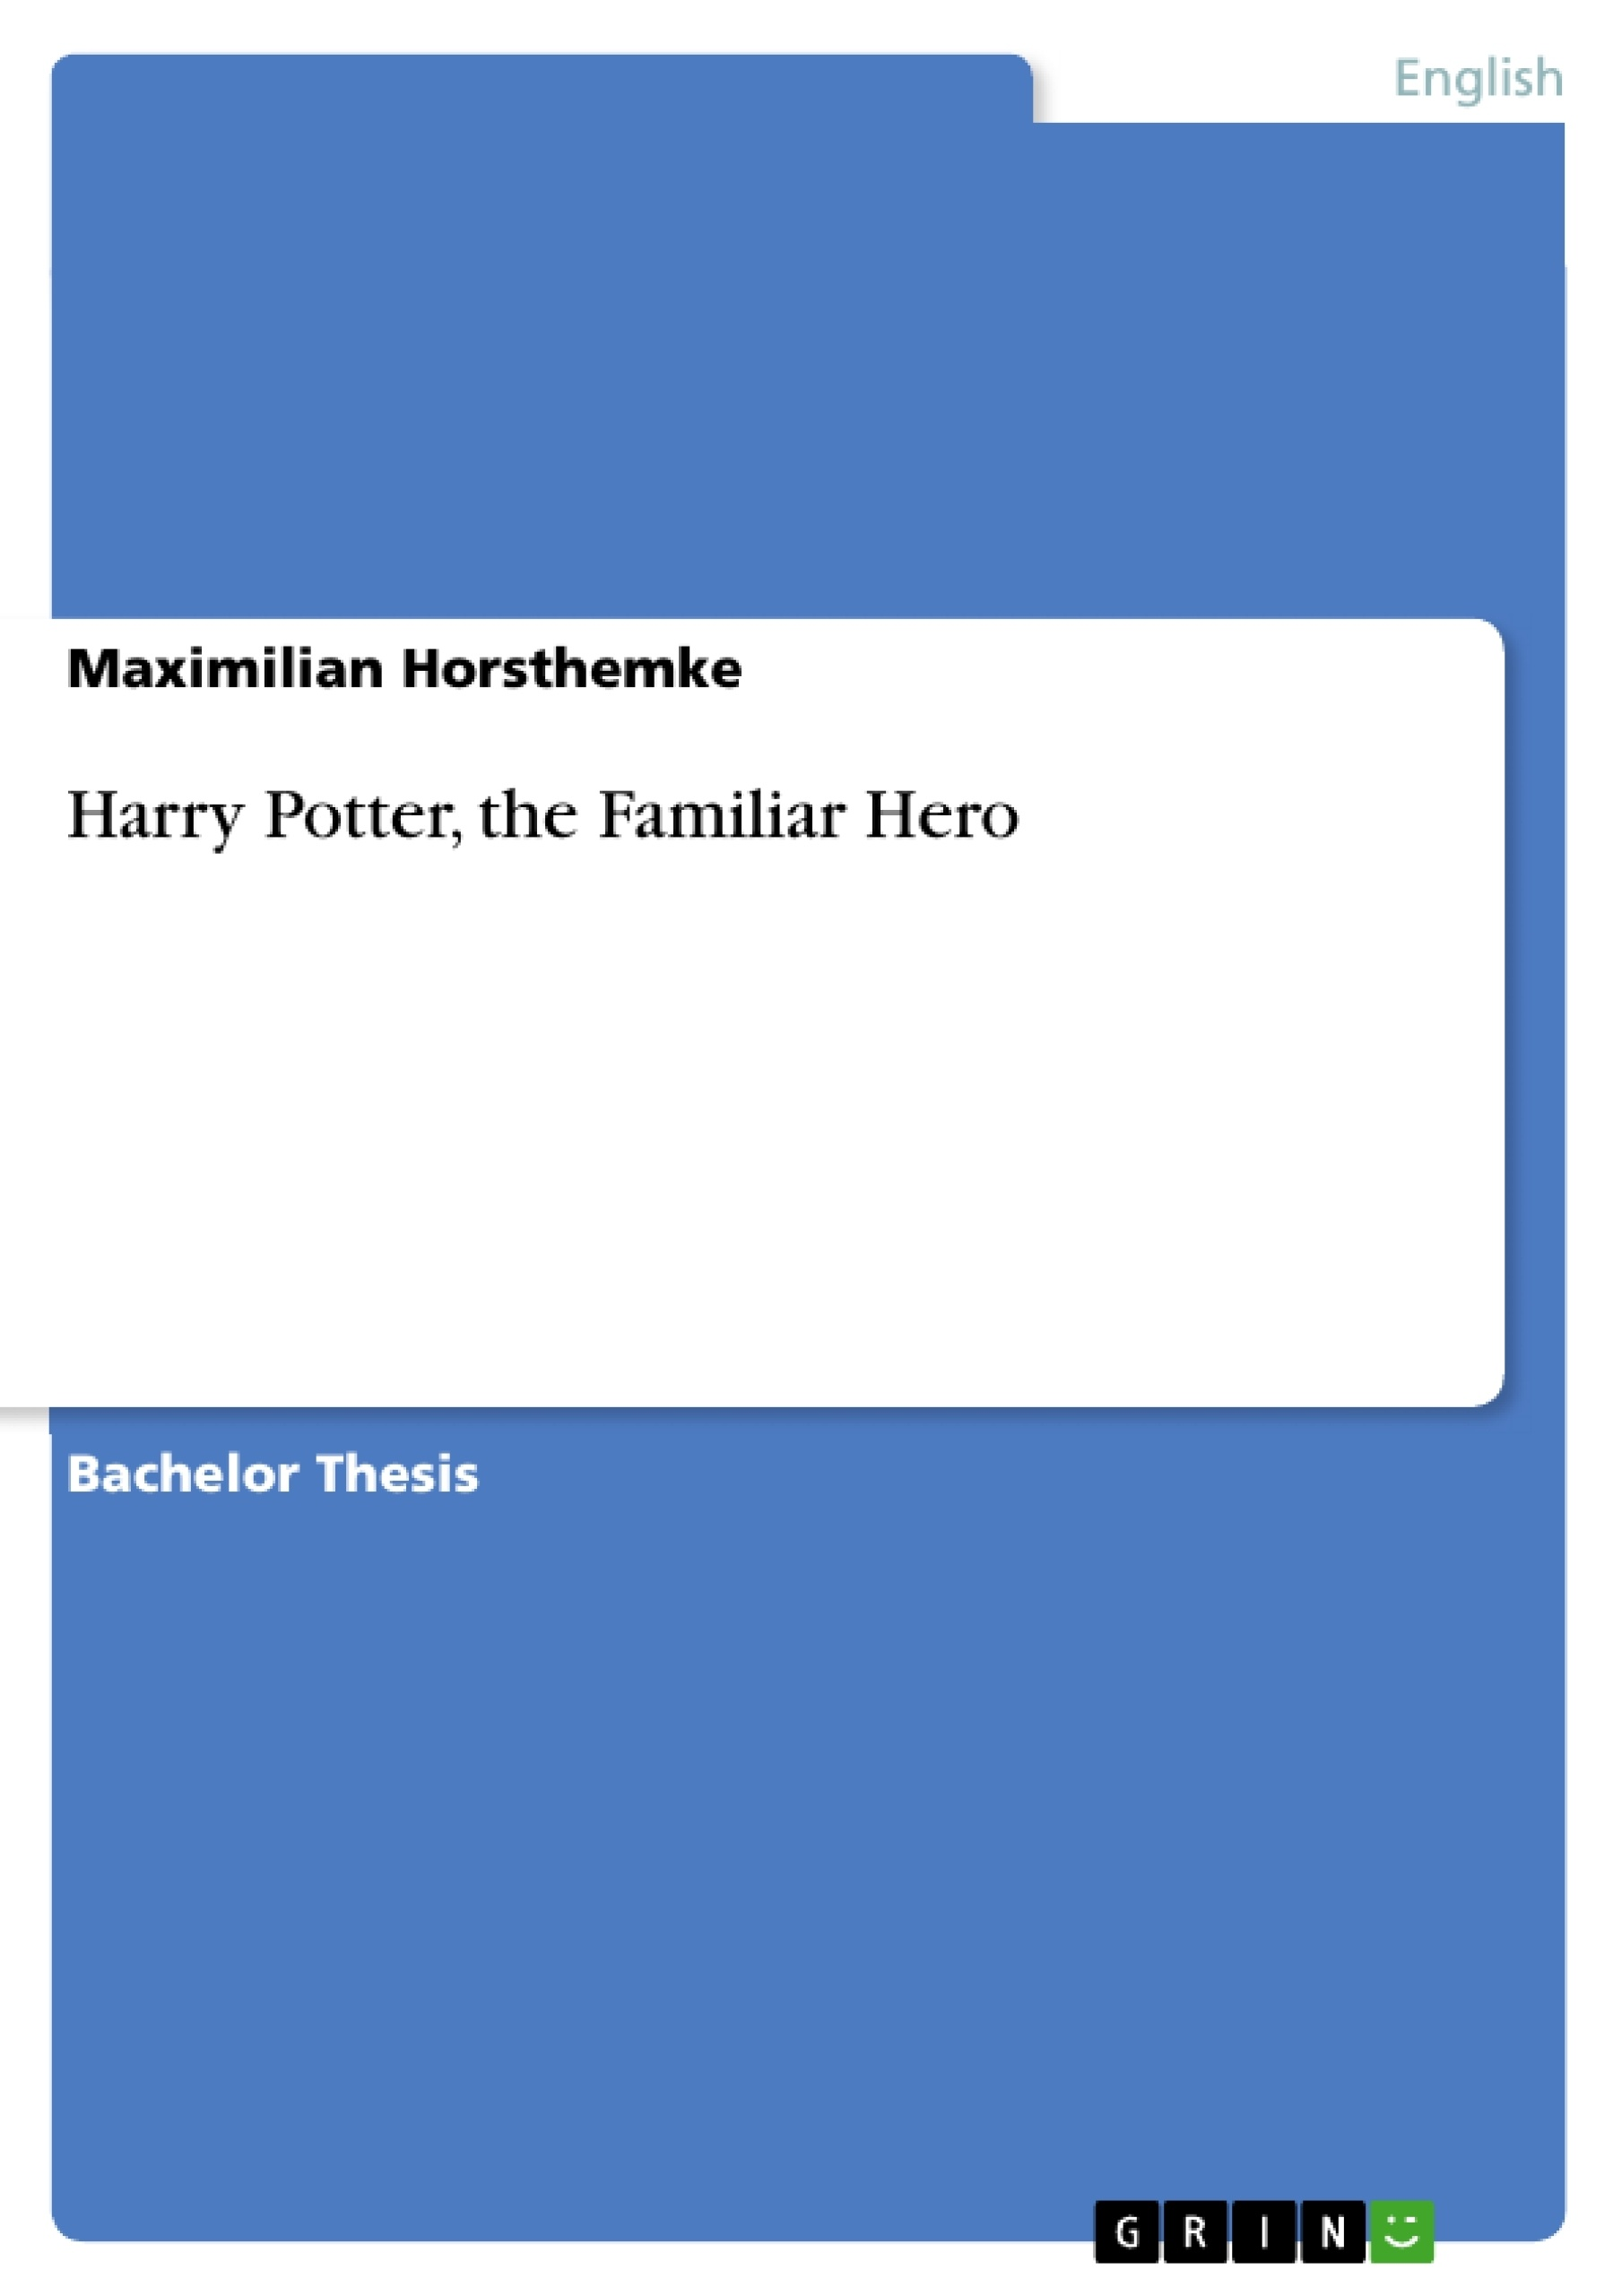 Title: Harry Potter, the Familiar Hero